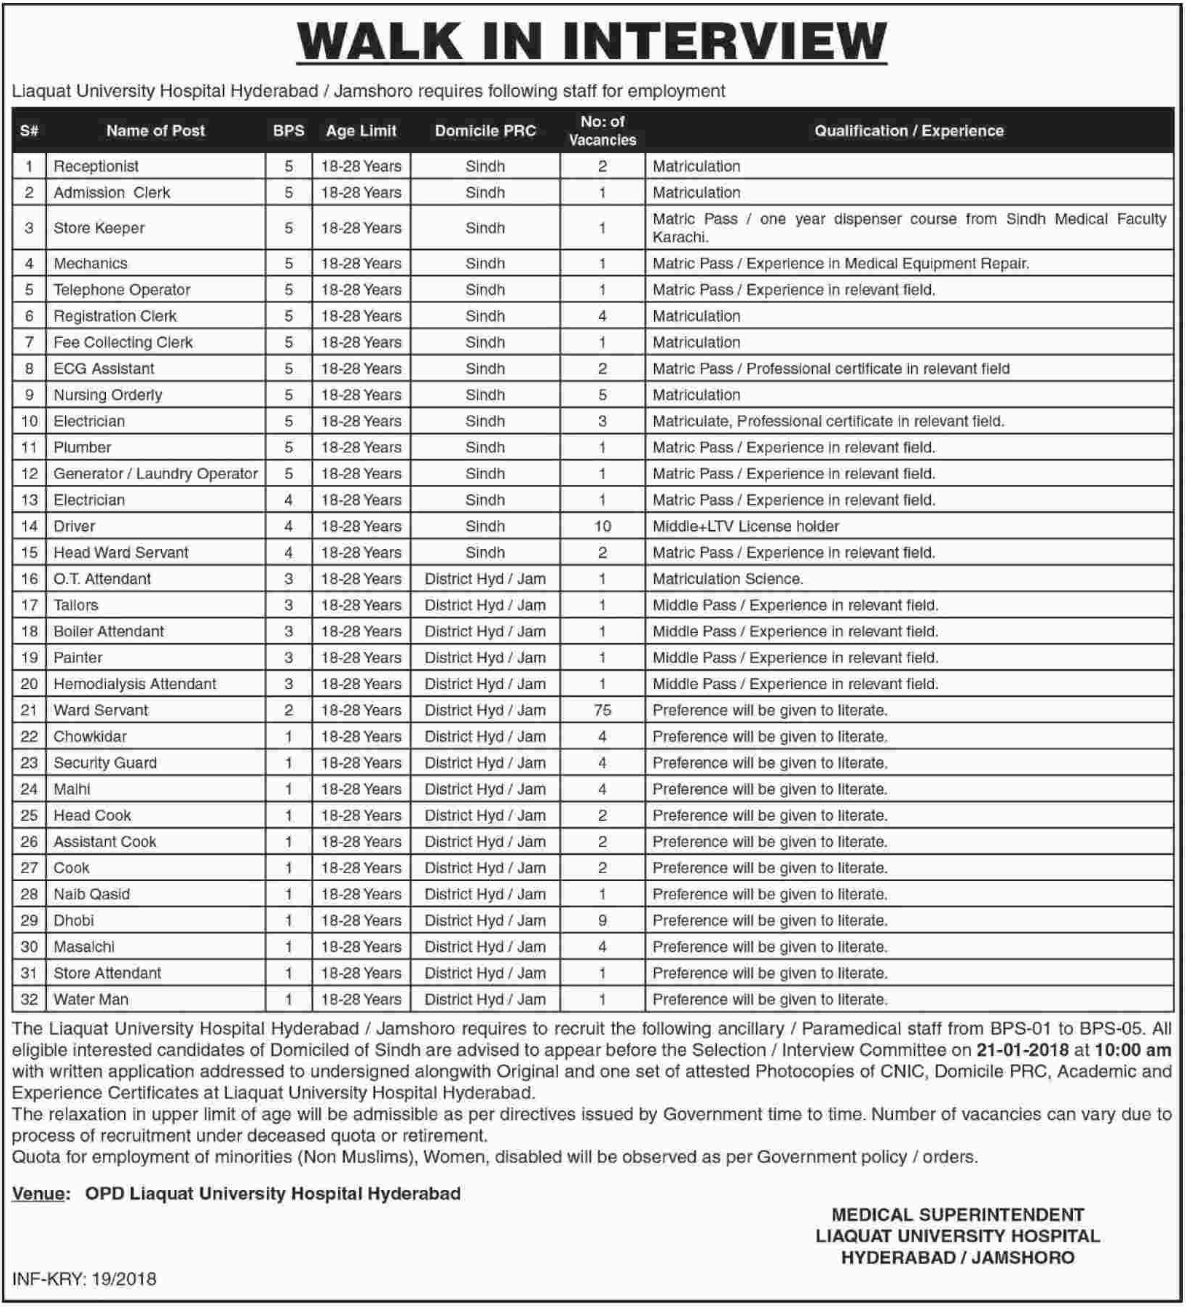 Liaquat University Hospital Hyderabad/Jamshoro Jobs 2018